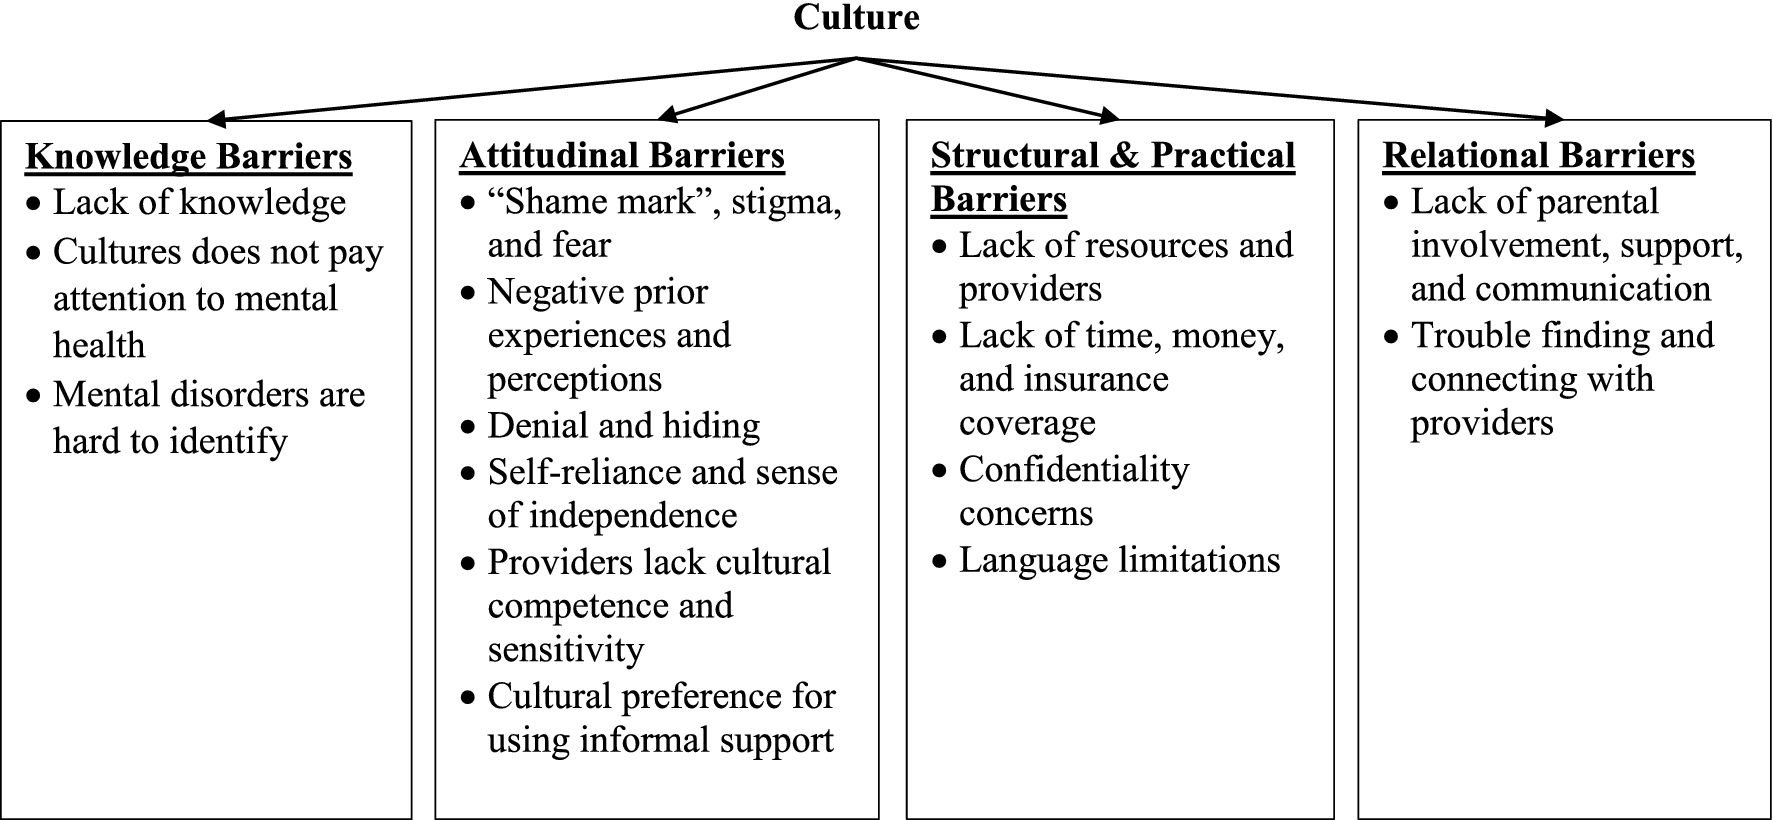 cultural barriers to parental involvement